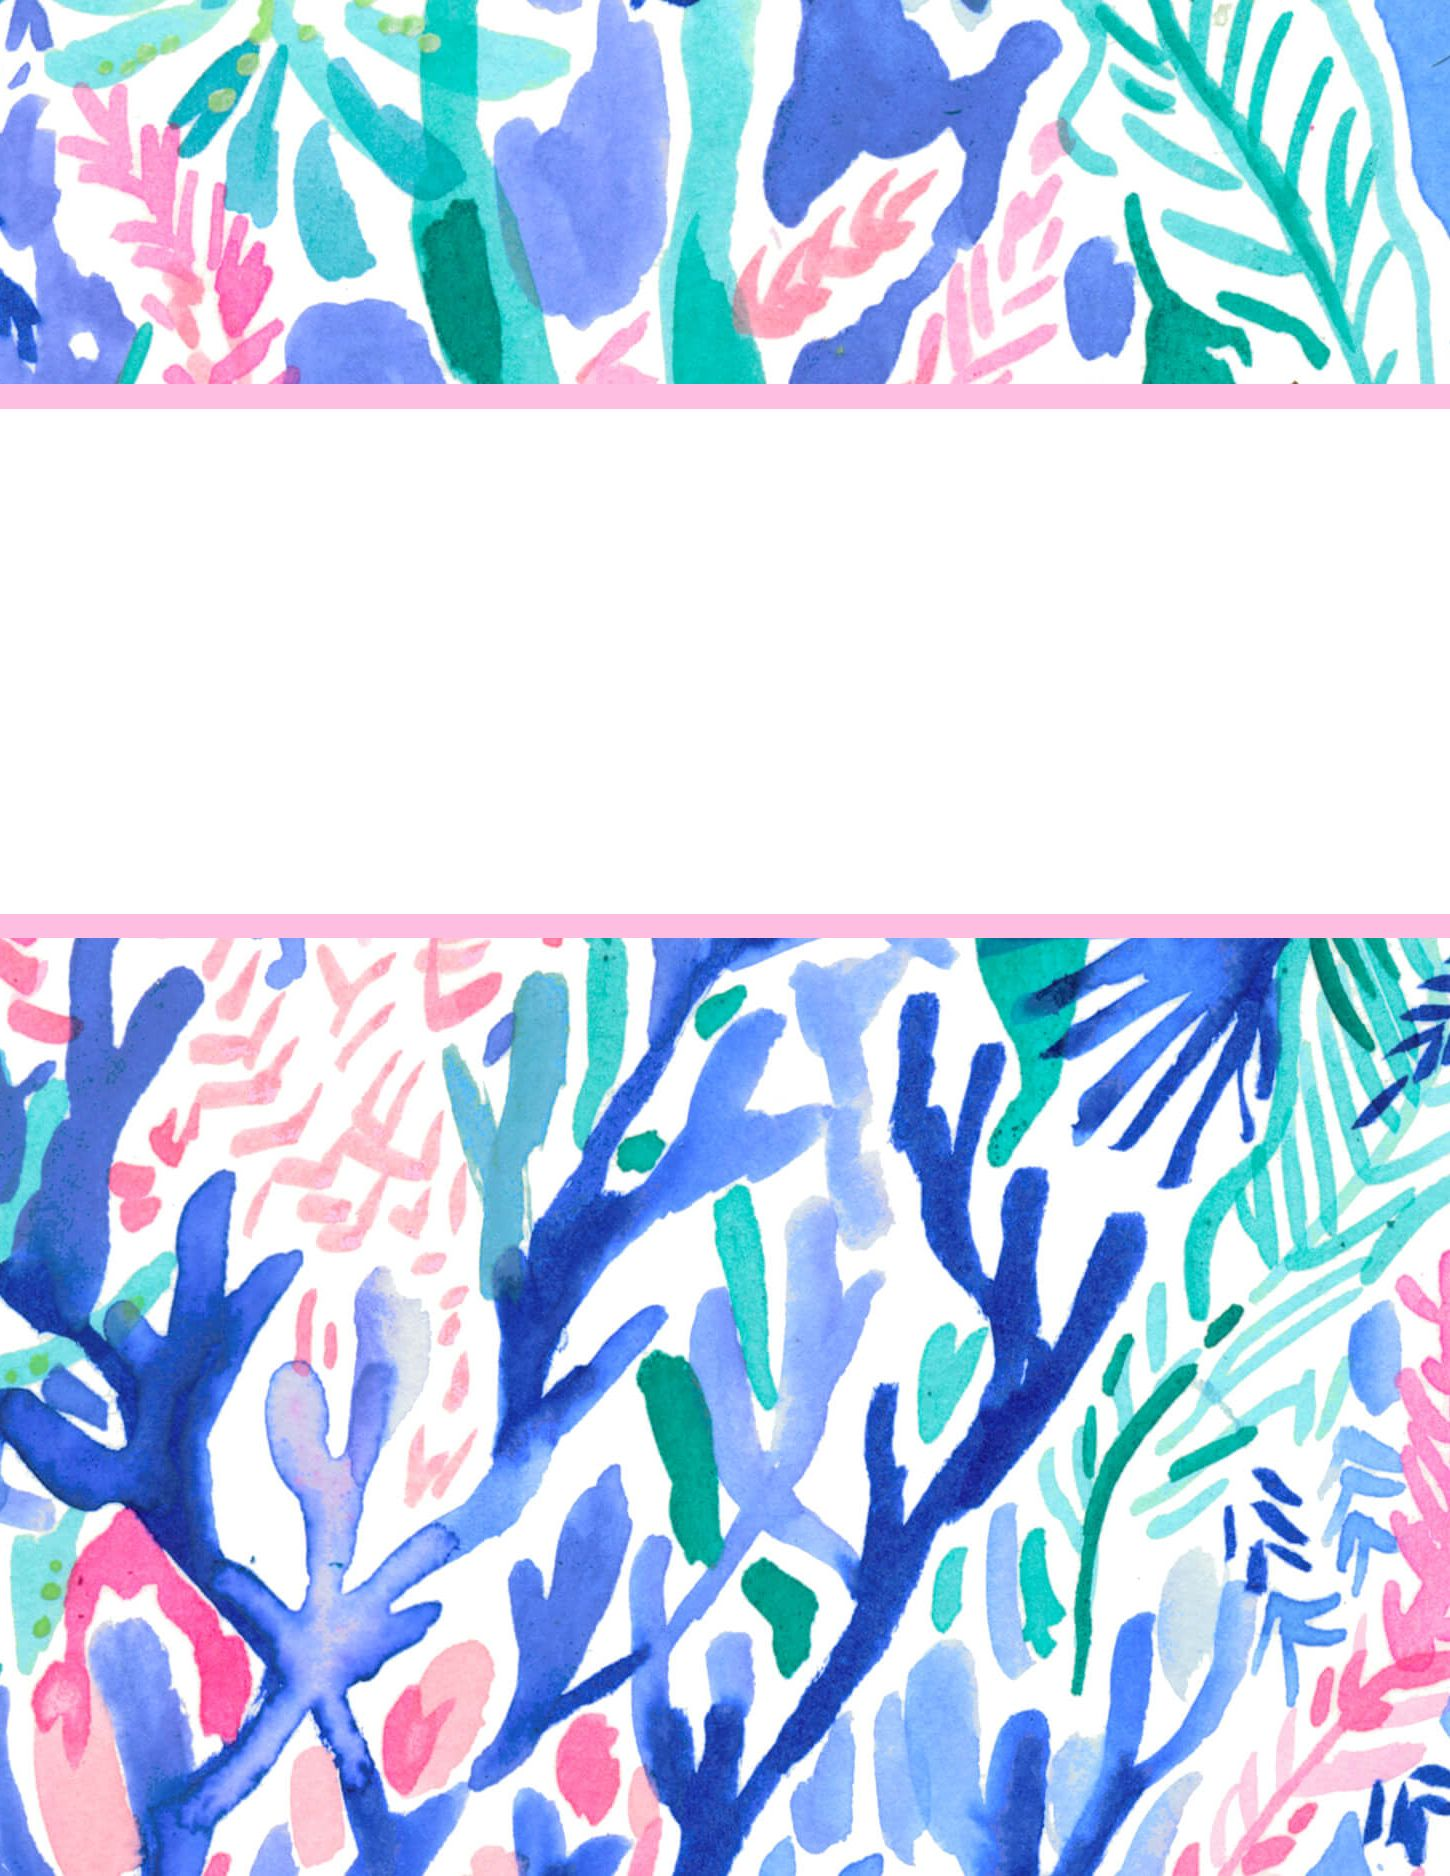 image regarding Free Printable Binder Covers Lilly Pulitzer named Totally free Printable Preppy Lilly Pulitzer Binder Handles College or university